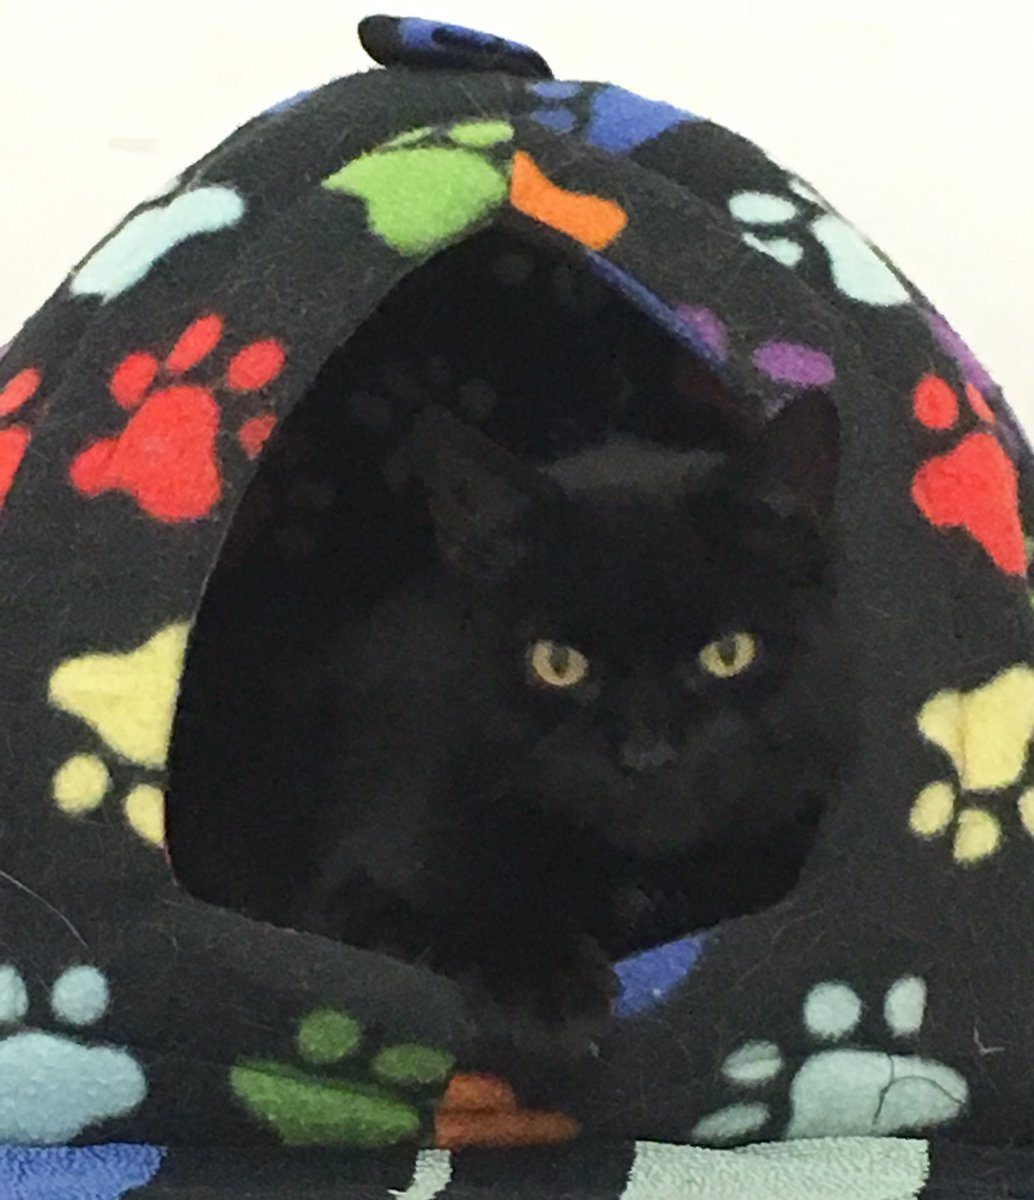 Aniseed is a new resident - this mini panther is looking forward to saying hello to the visitors on #caturday - the shelter is open 11-4 today  <br>http://pic.twitter.com/NmXqUPrIuI